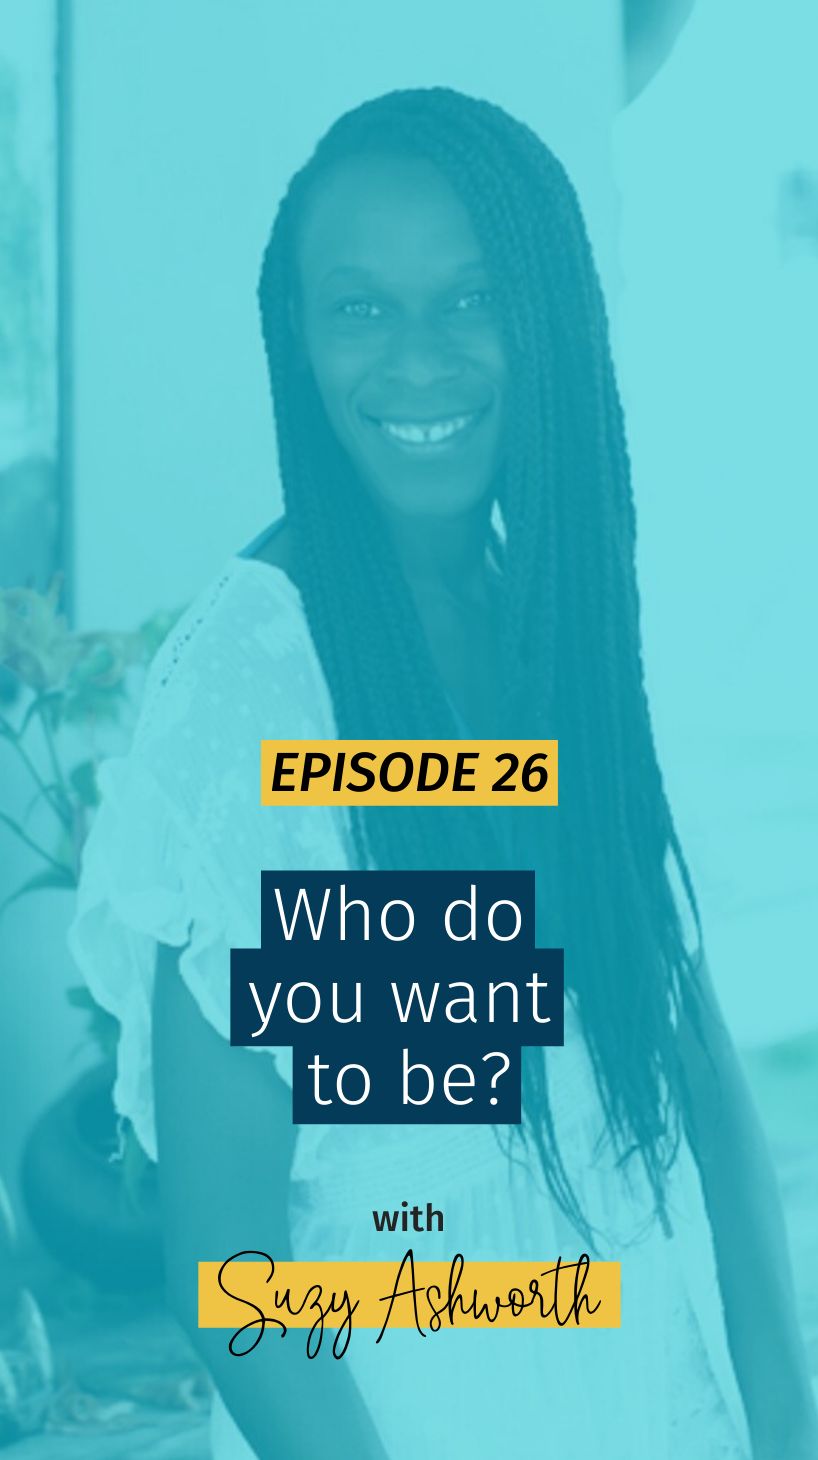 026 Who do you want to be?